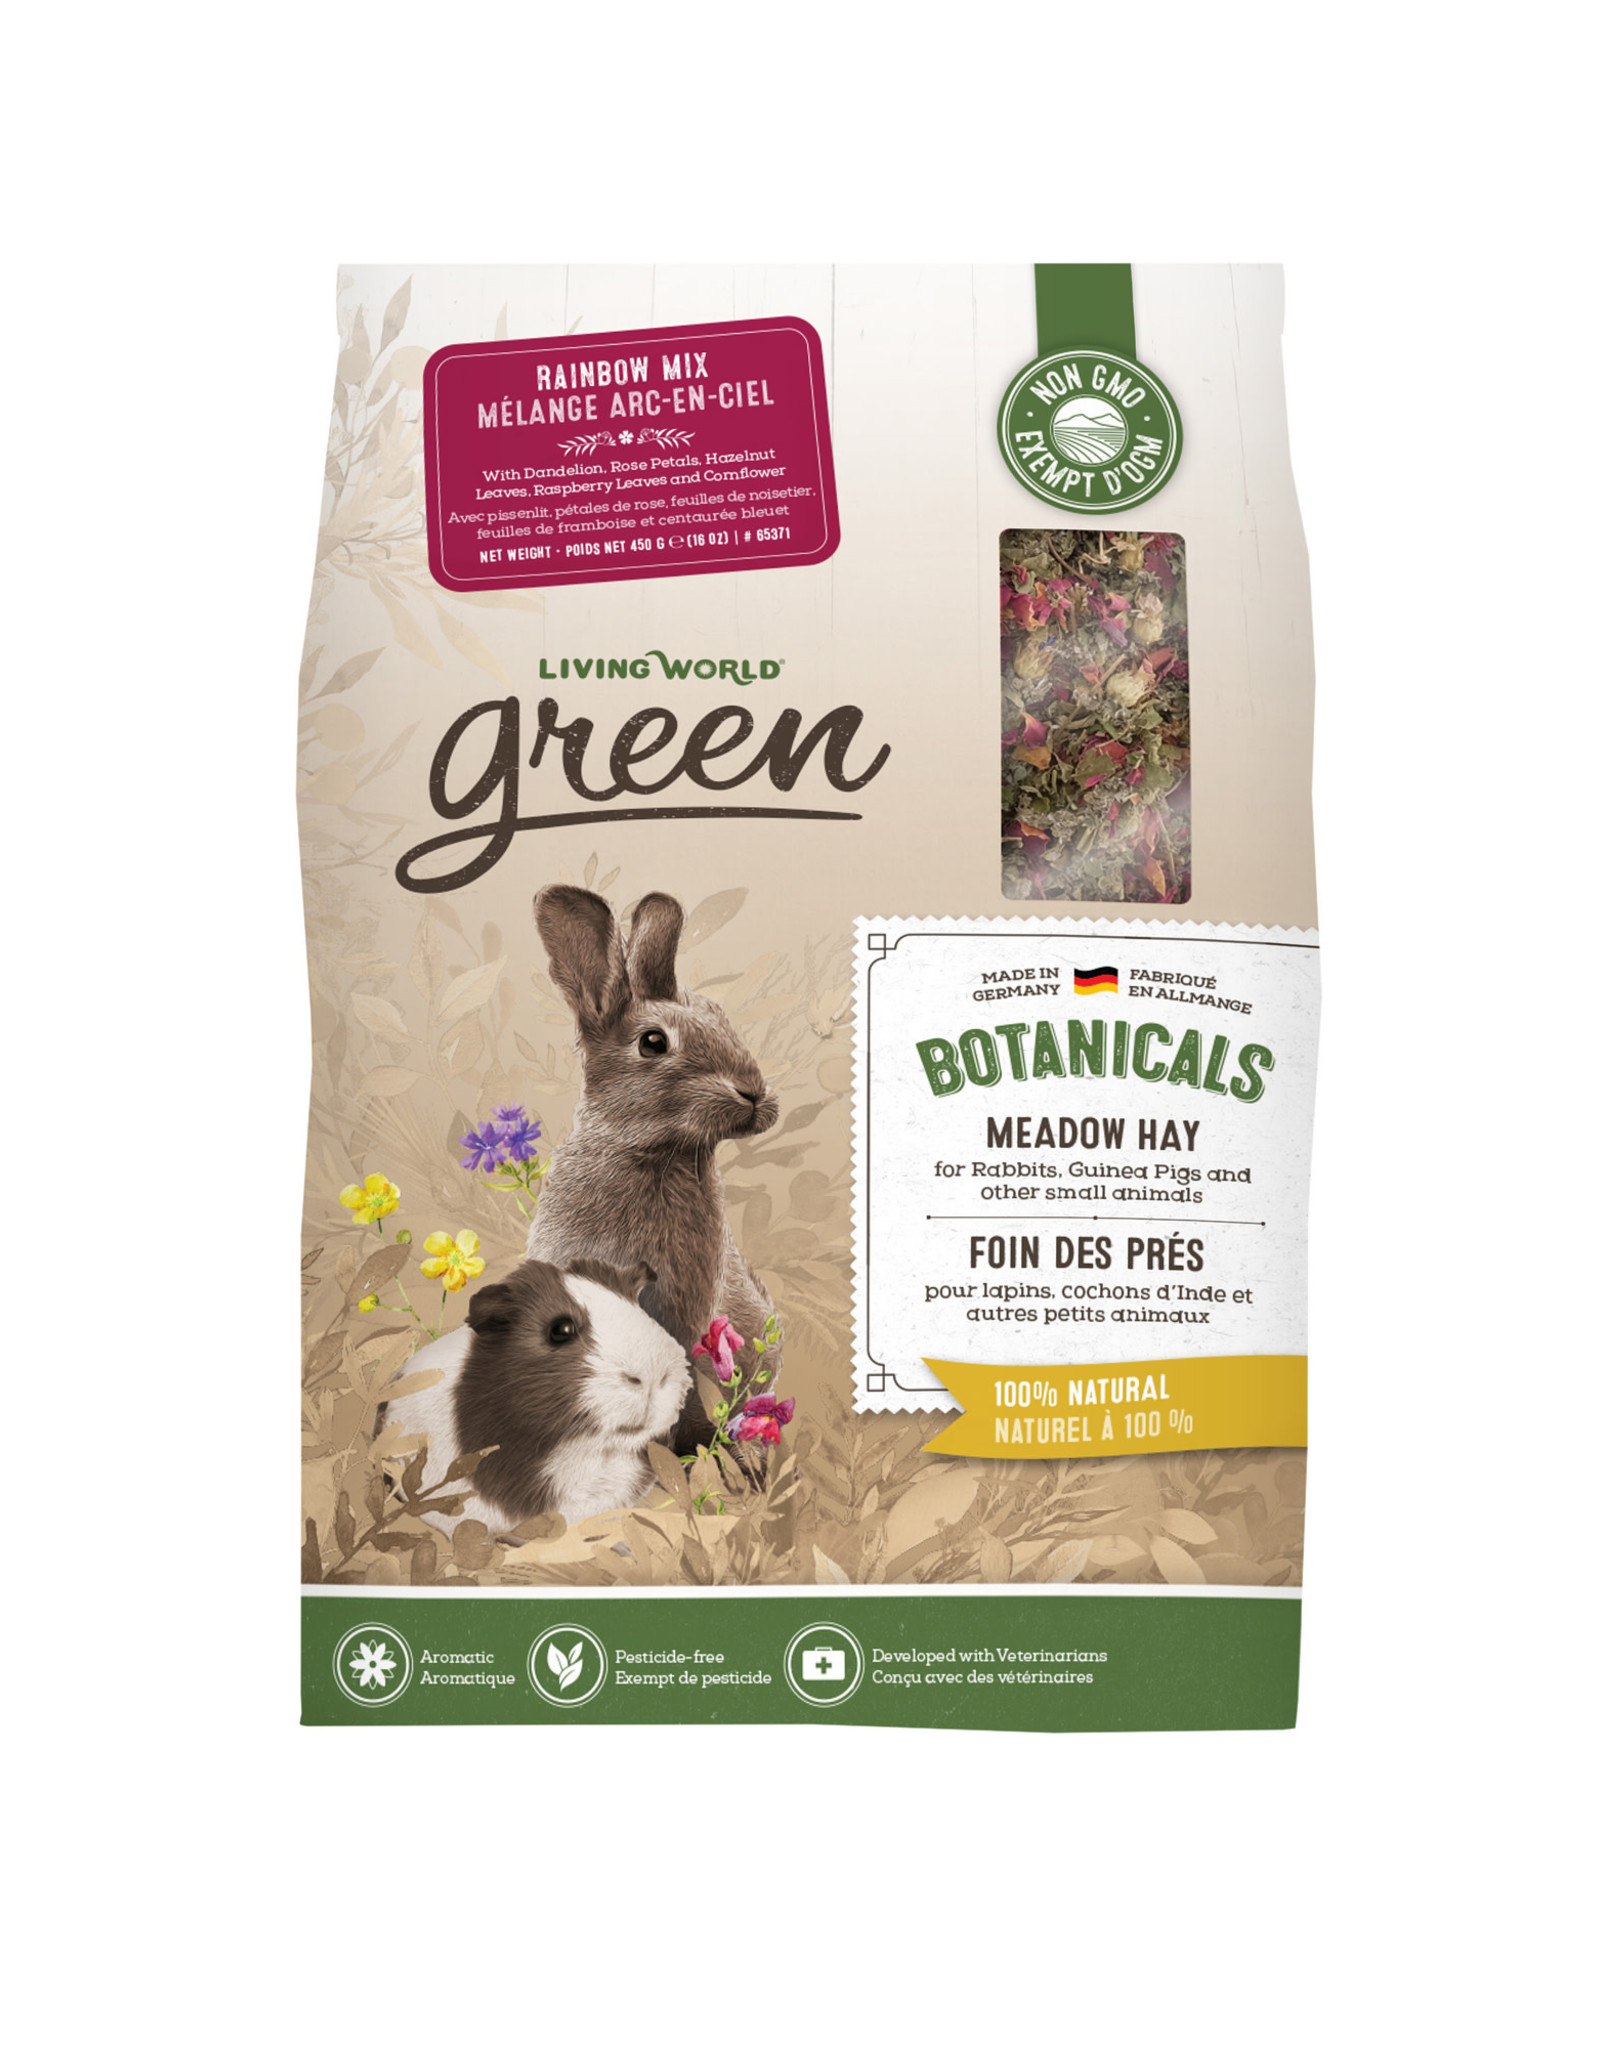 LIVING WORLD Living World Green Botanicals Meadow Hay - Rainbow Mix - 450 g